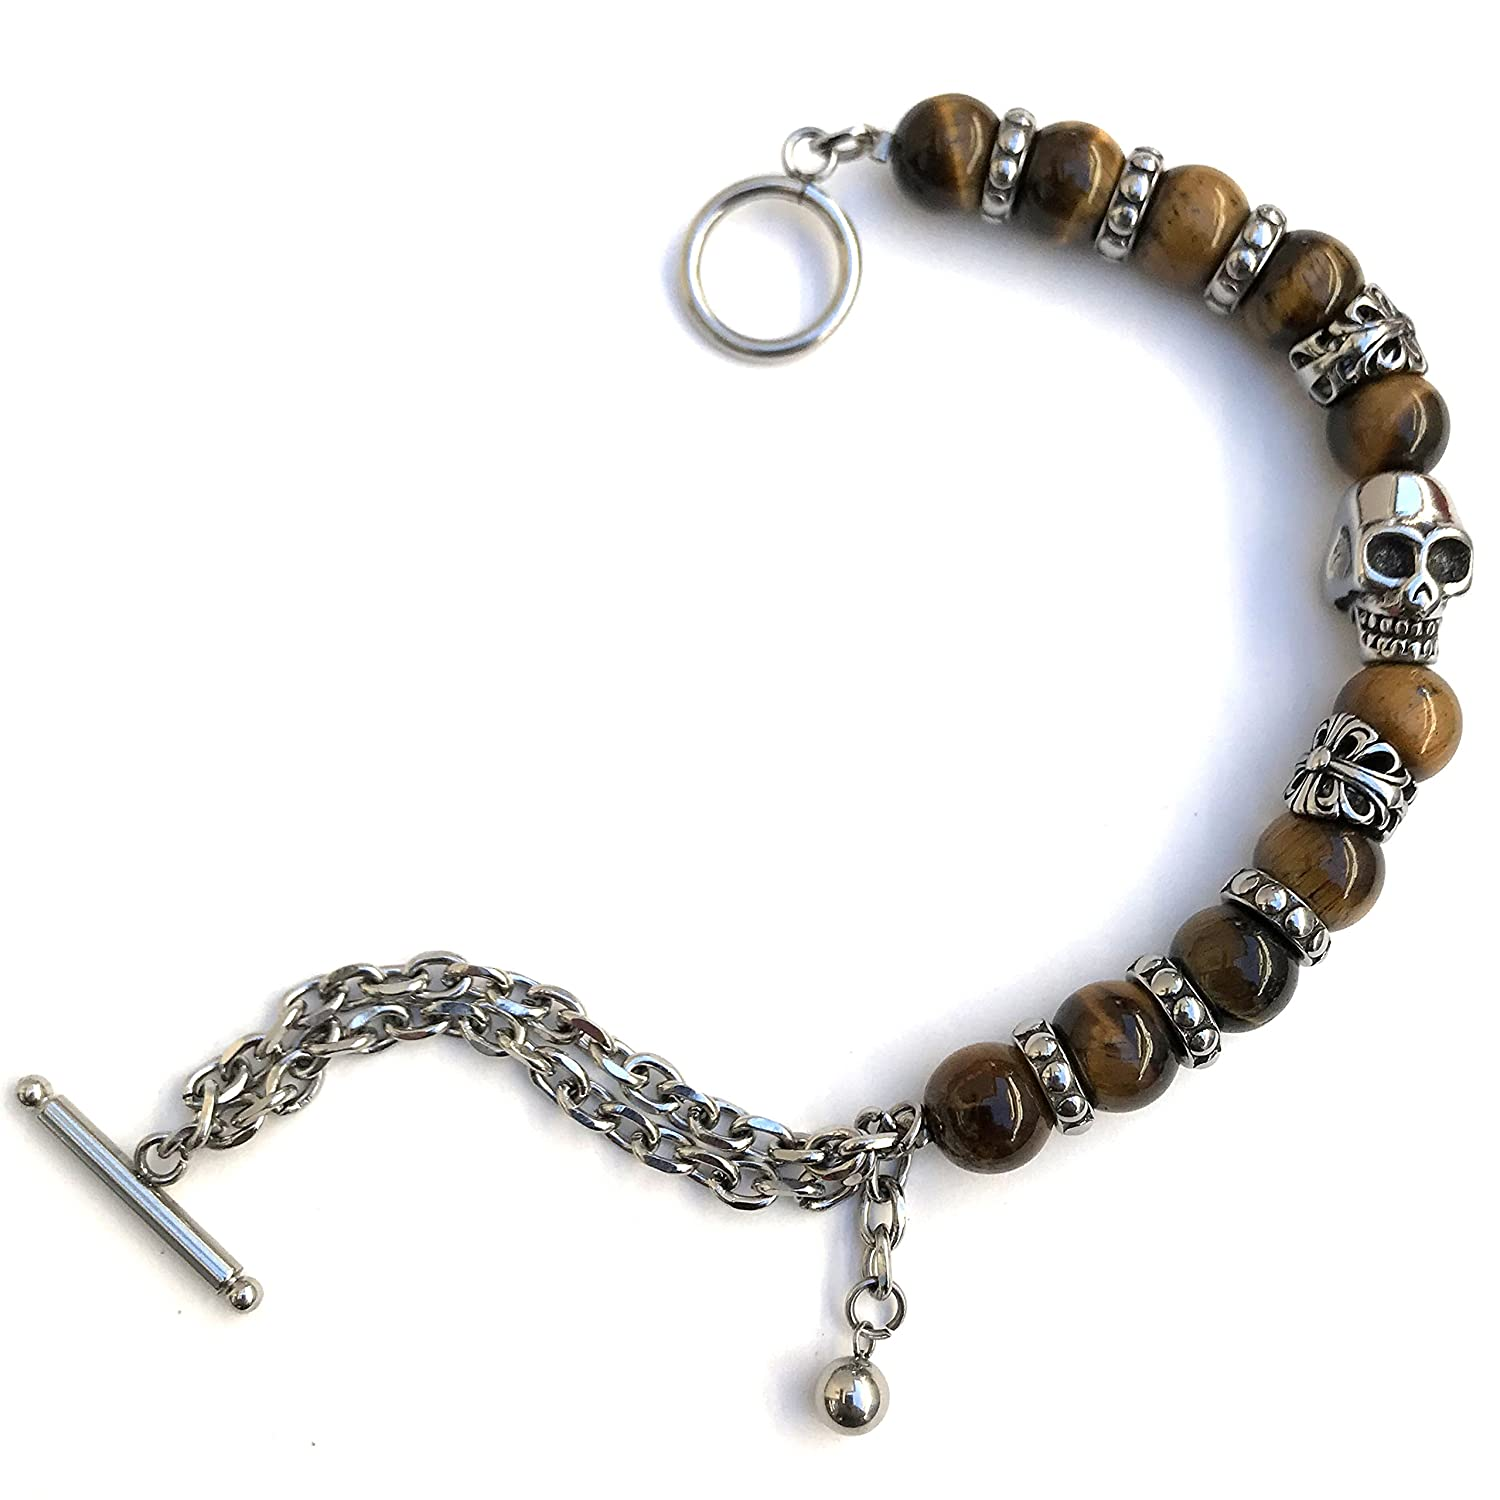 Vexed Soul 10mm Bead with Skull and Gothic Metal Beads Along with Stainless Steel Link Chain Bracelet 9.5 VS-YY-03